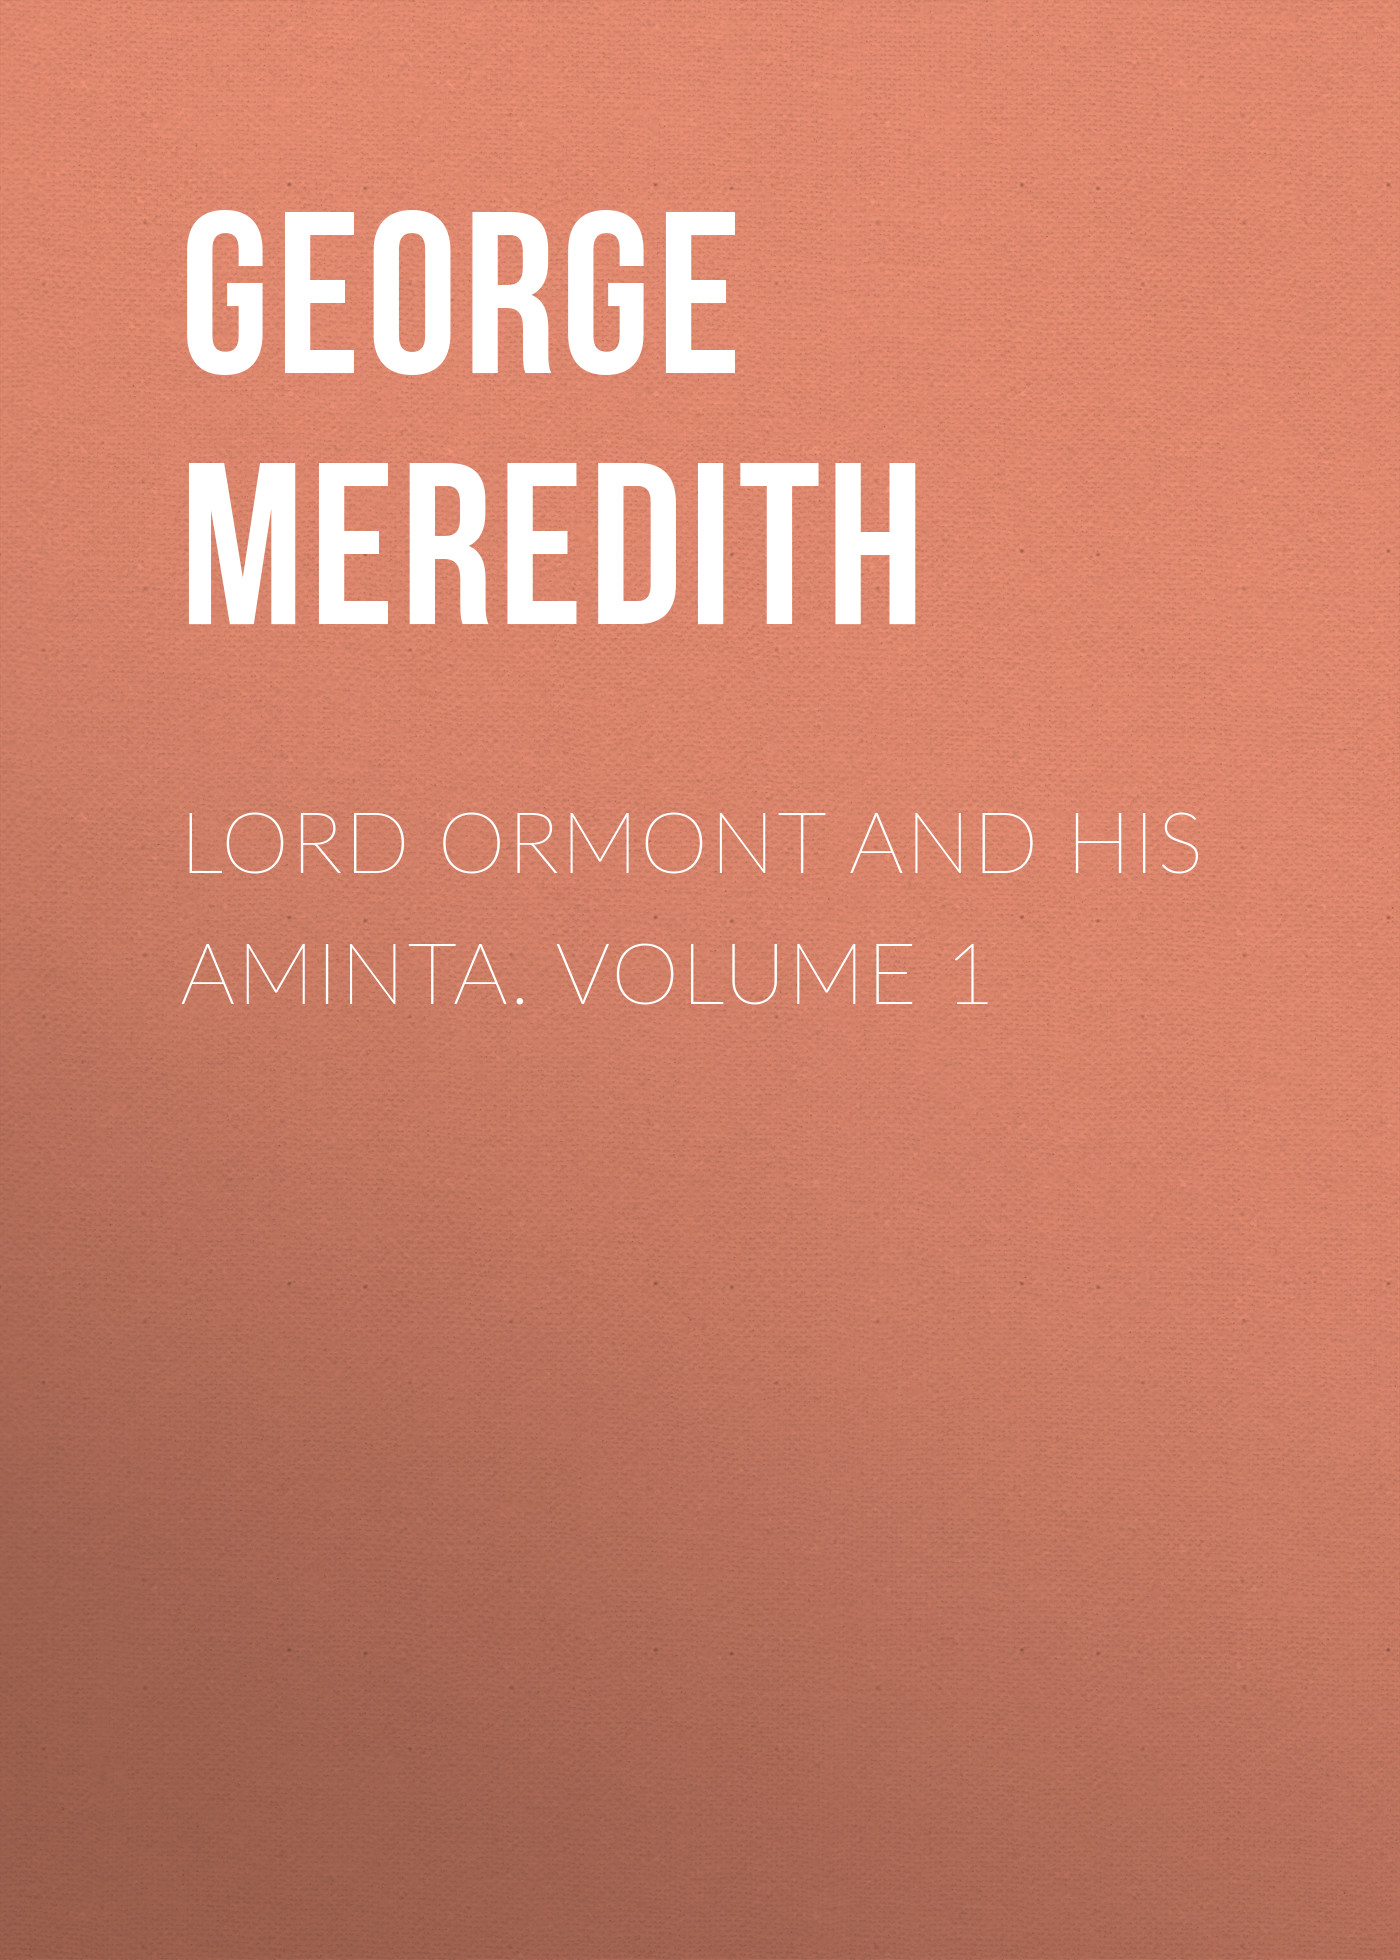 George Meredith Lord Ormont and His Aminta. Volume 1 george meredith lord ormont and his aminta volume 2